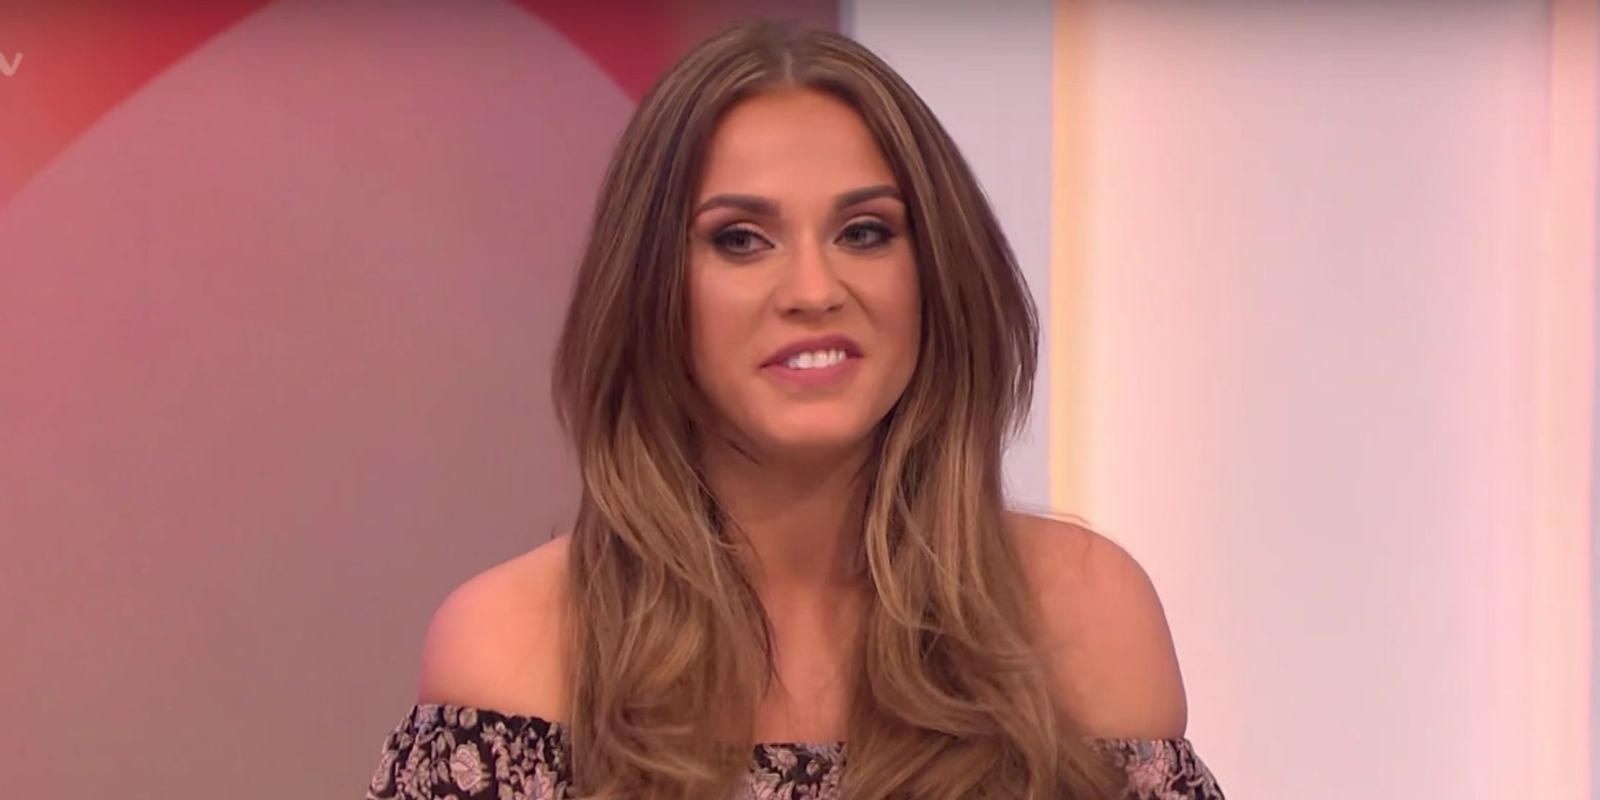 vicky pattison is apparently going to be on another panel show